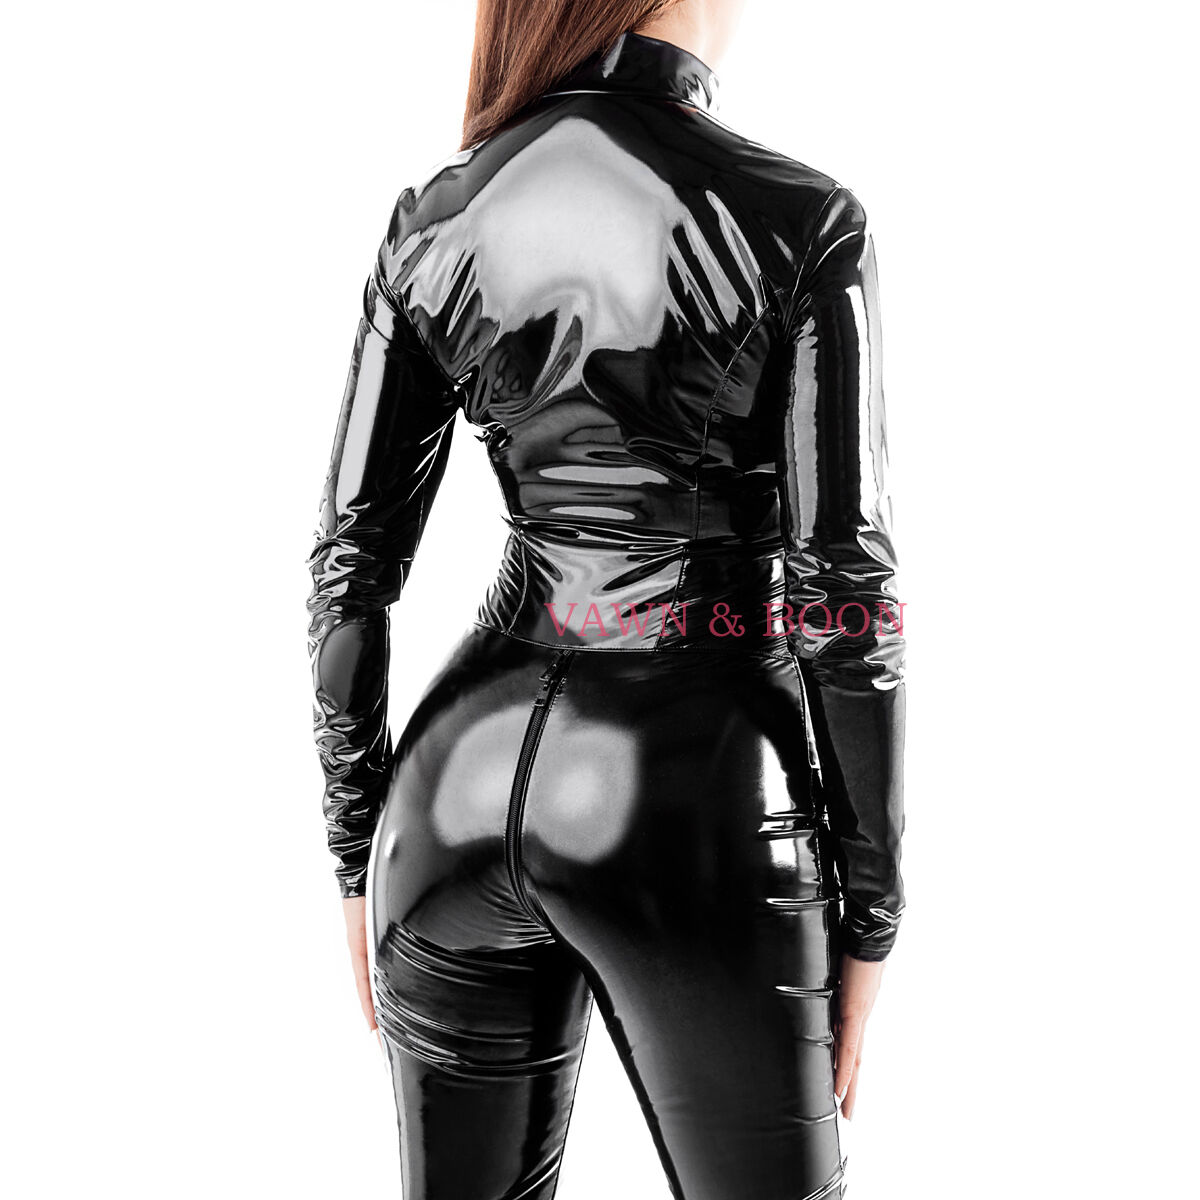 VORTEX PVC catsuit Vawn and Boon - regular and tall heights UK 8 10 12 14 16 18